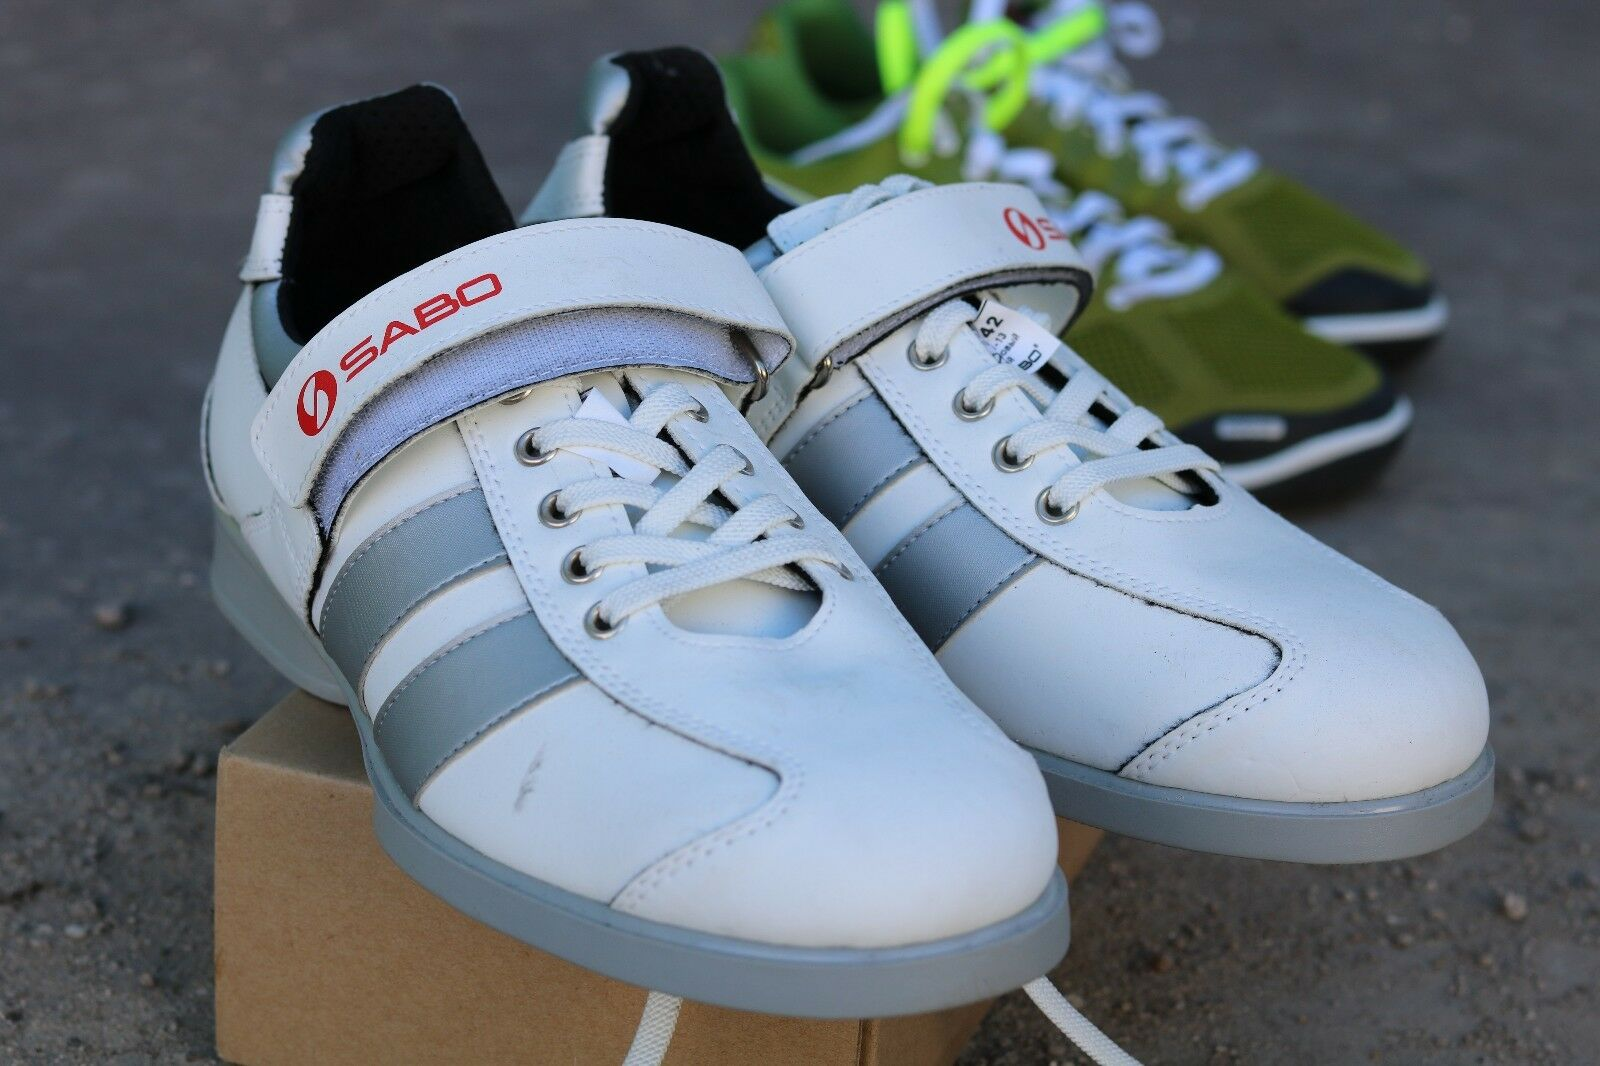 SABO Weightlifting Powerlifting Crossfit chaussures chaussures Crossfit noir blanc 2d93f2